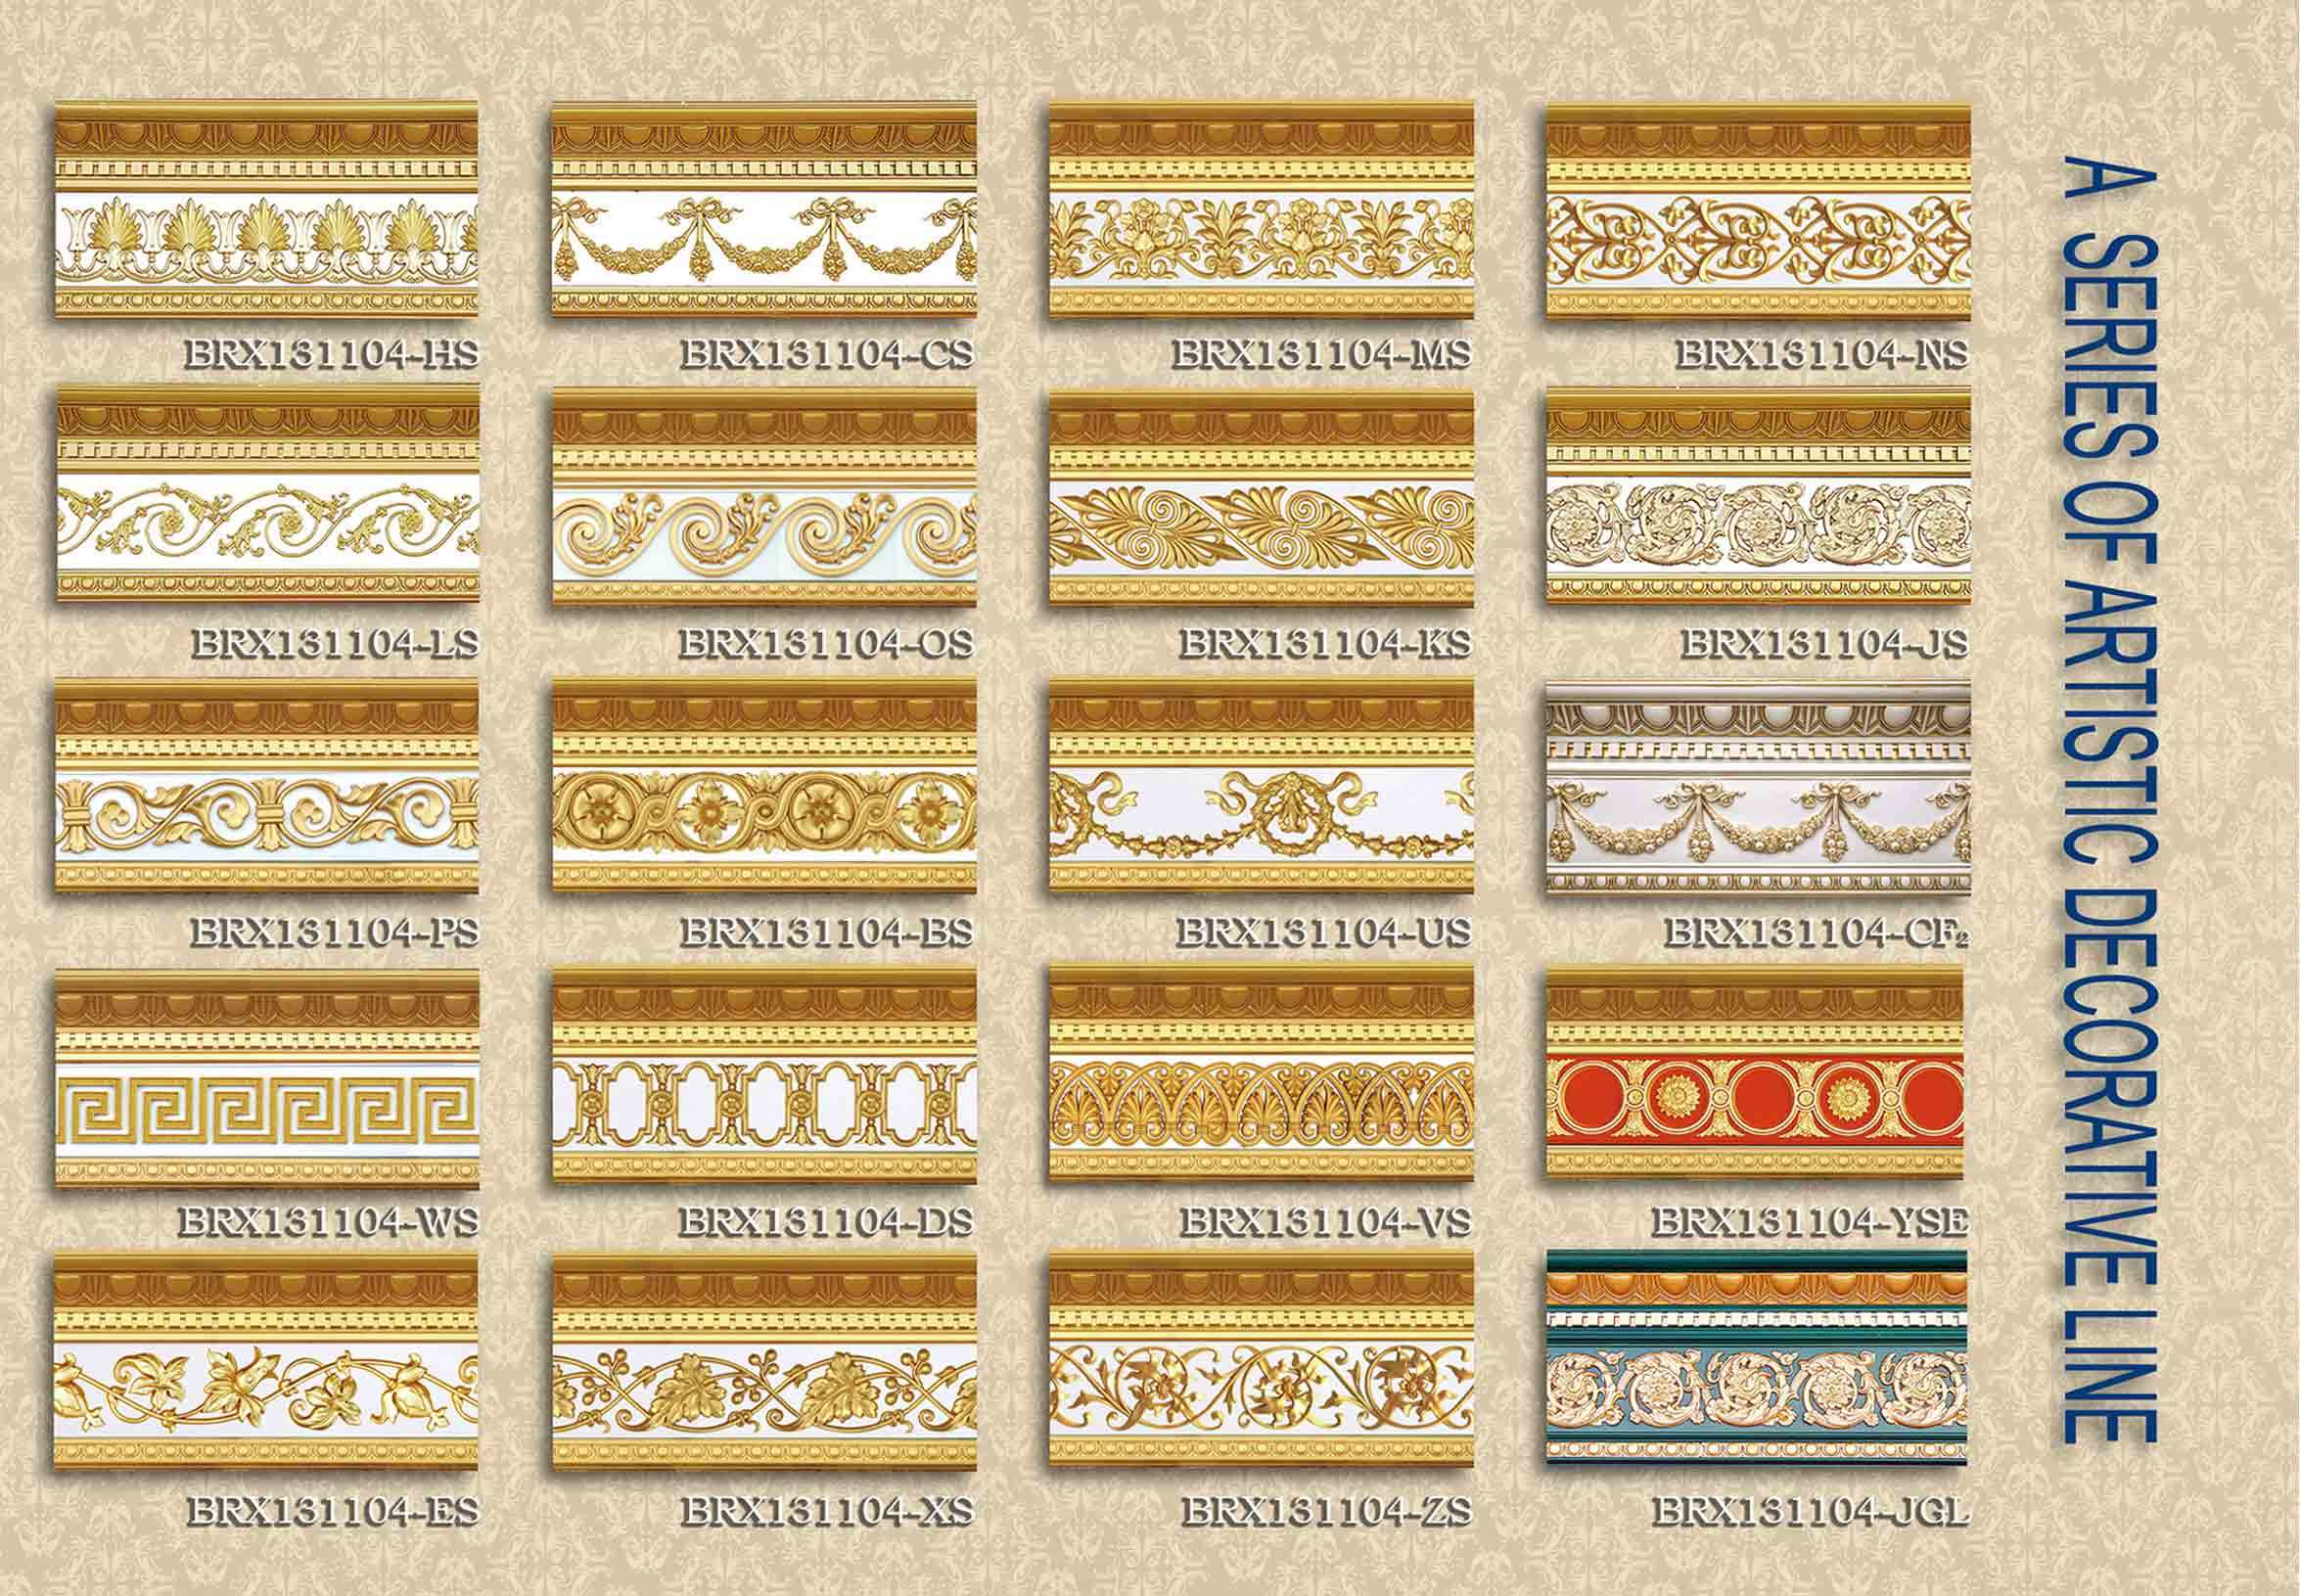 Exquisite Cornice for Luxurious Constraction (BRX131104-OS)